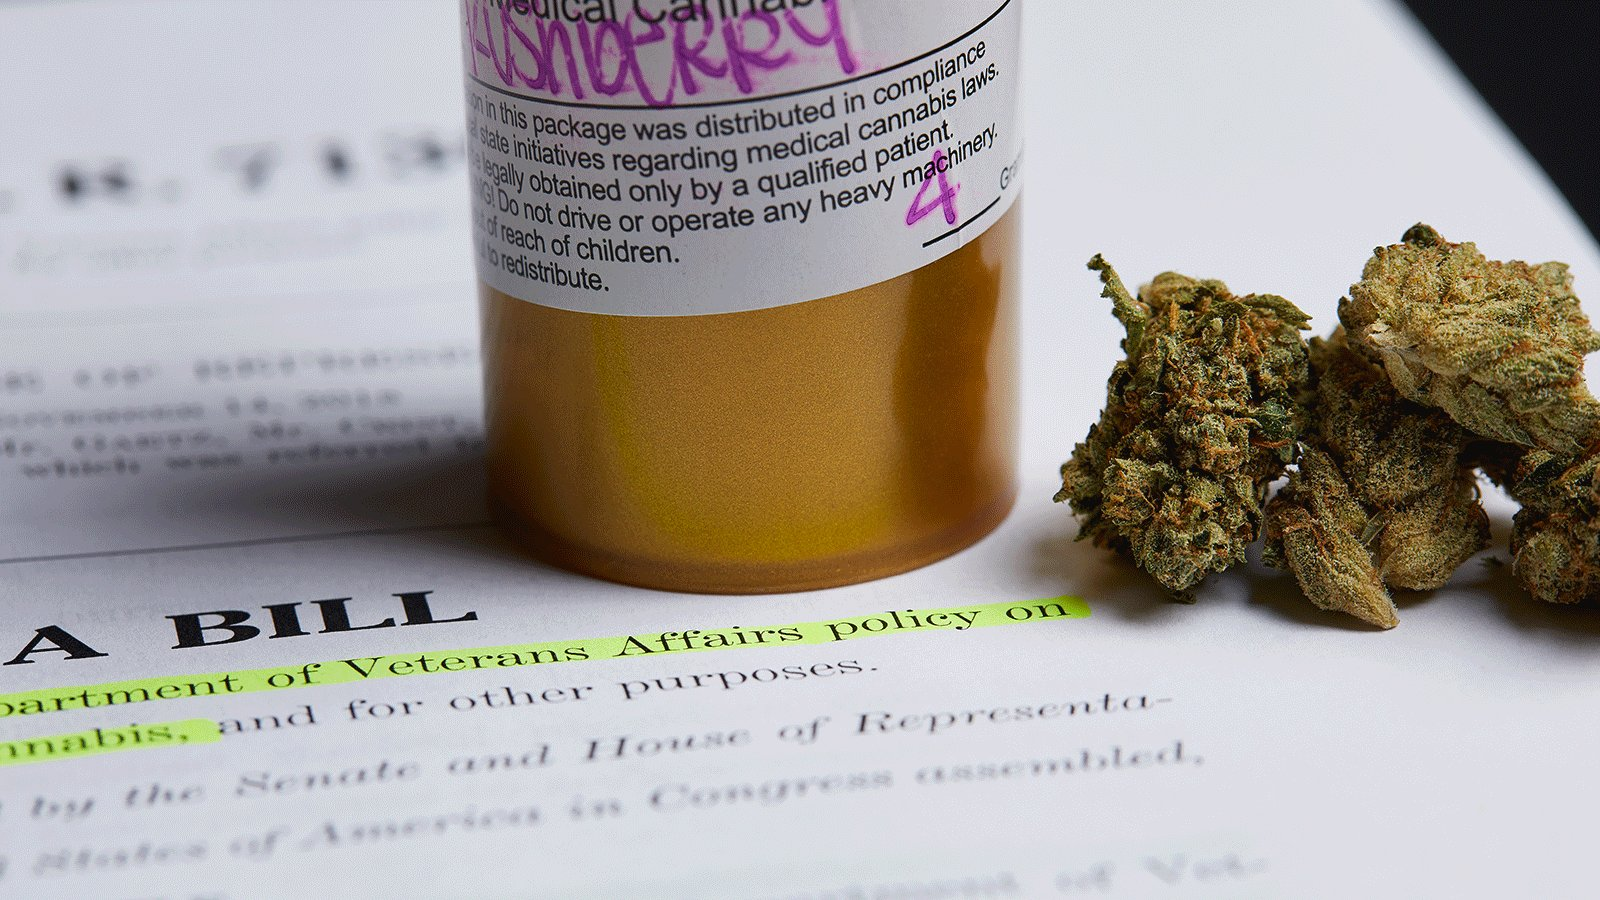 House Bill Would Direct Veterans Affairs to Research Medical Marijuana